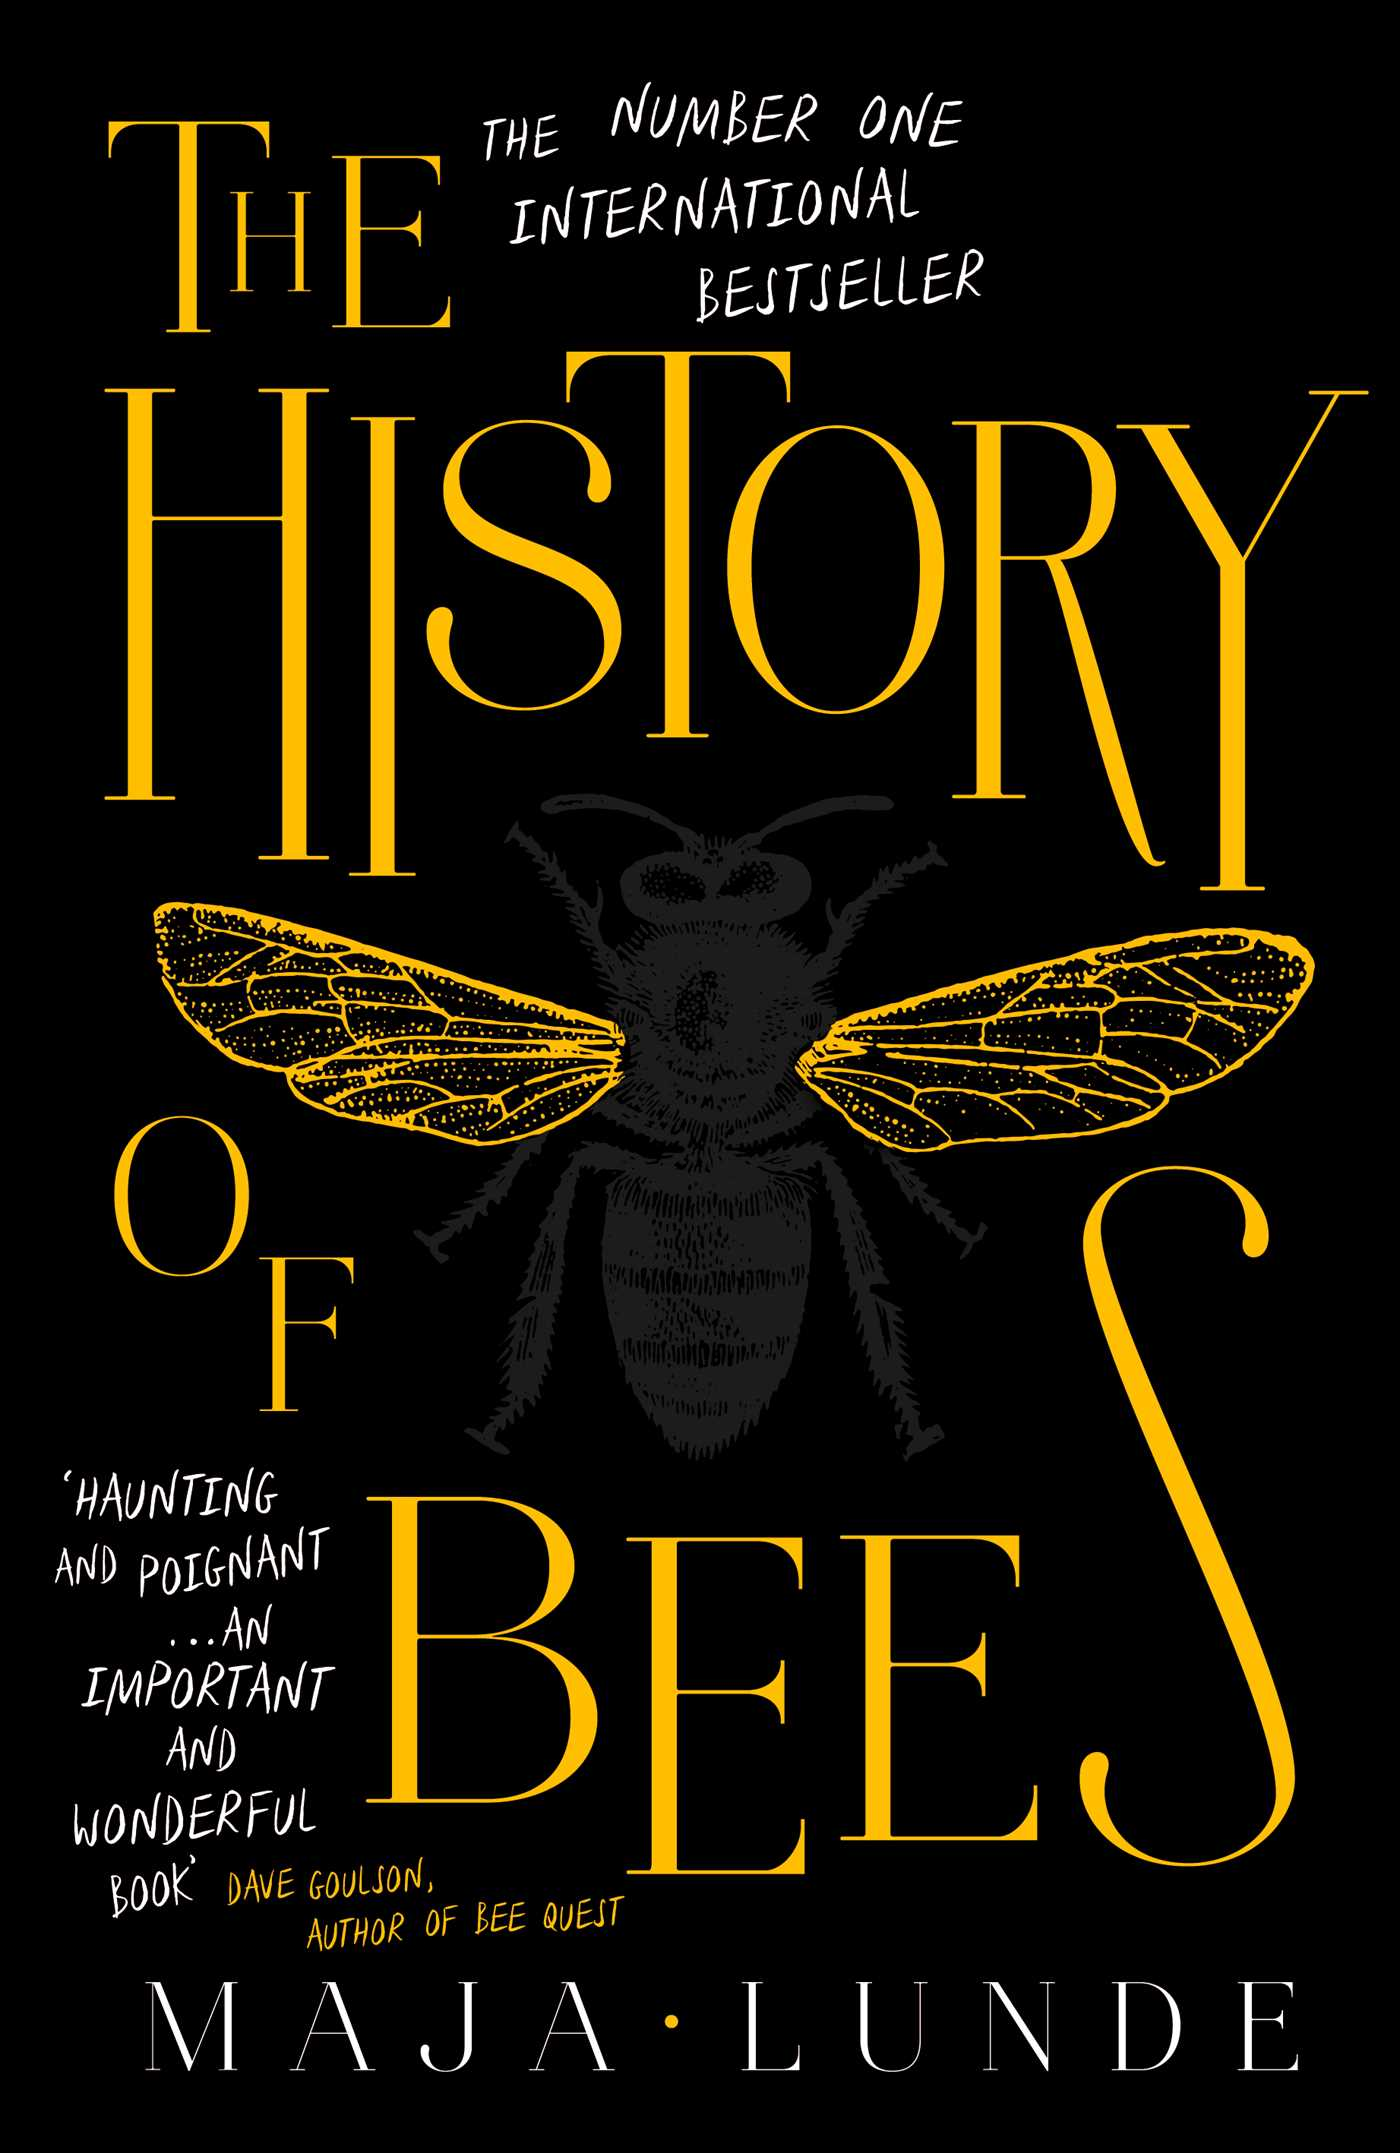 Image result for maja lunde history of bees